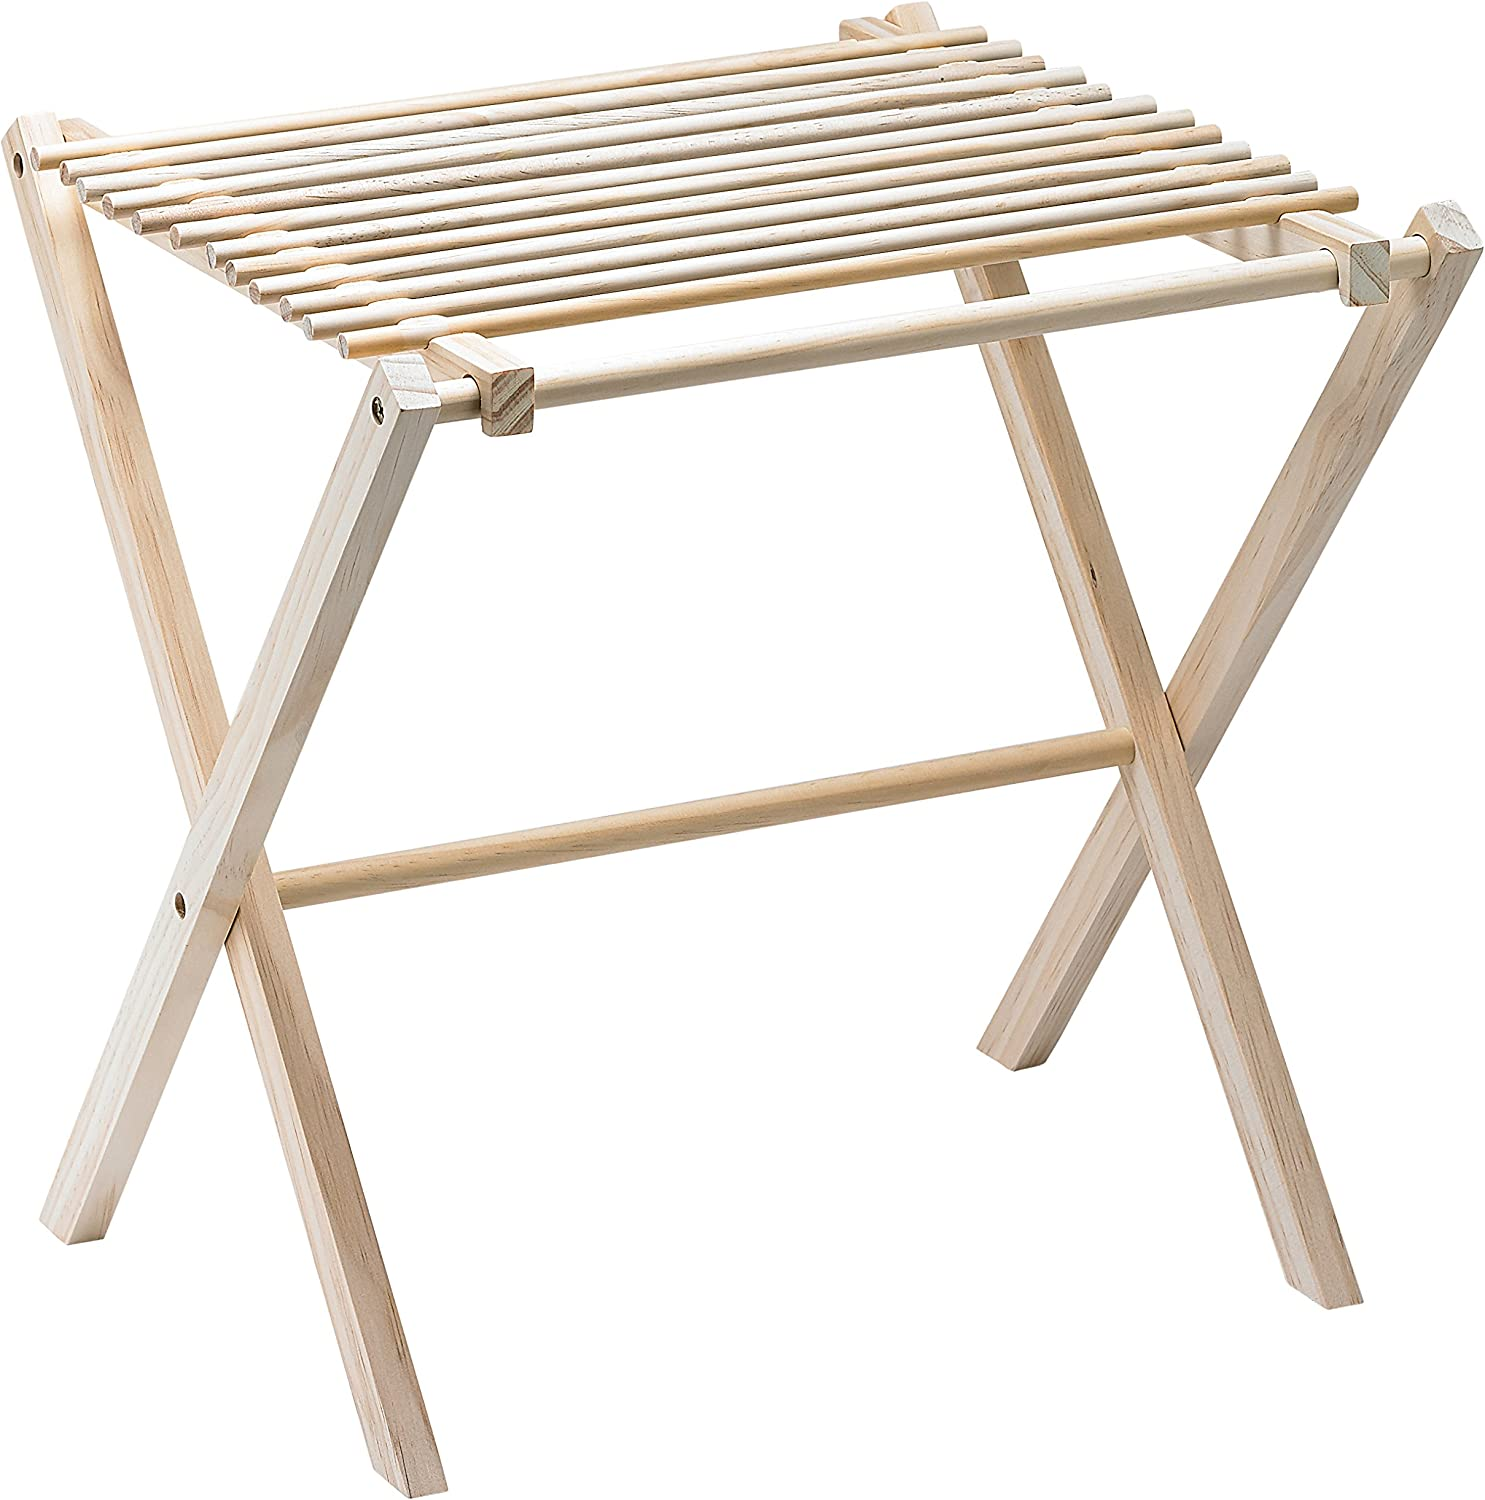 Fante's 43797 Collapsible Pasta and Noodle Drying Rack, Natural Wood, 14.5 x 16 x 15-Inches, The Italian Market Original Since 1906